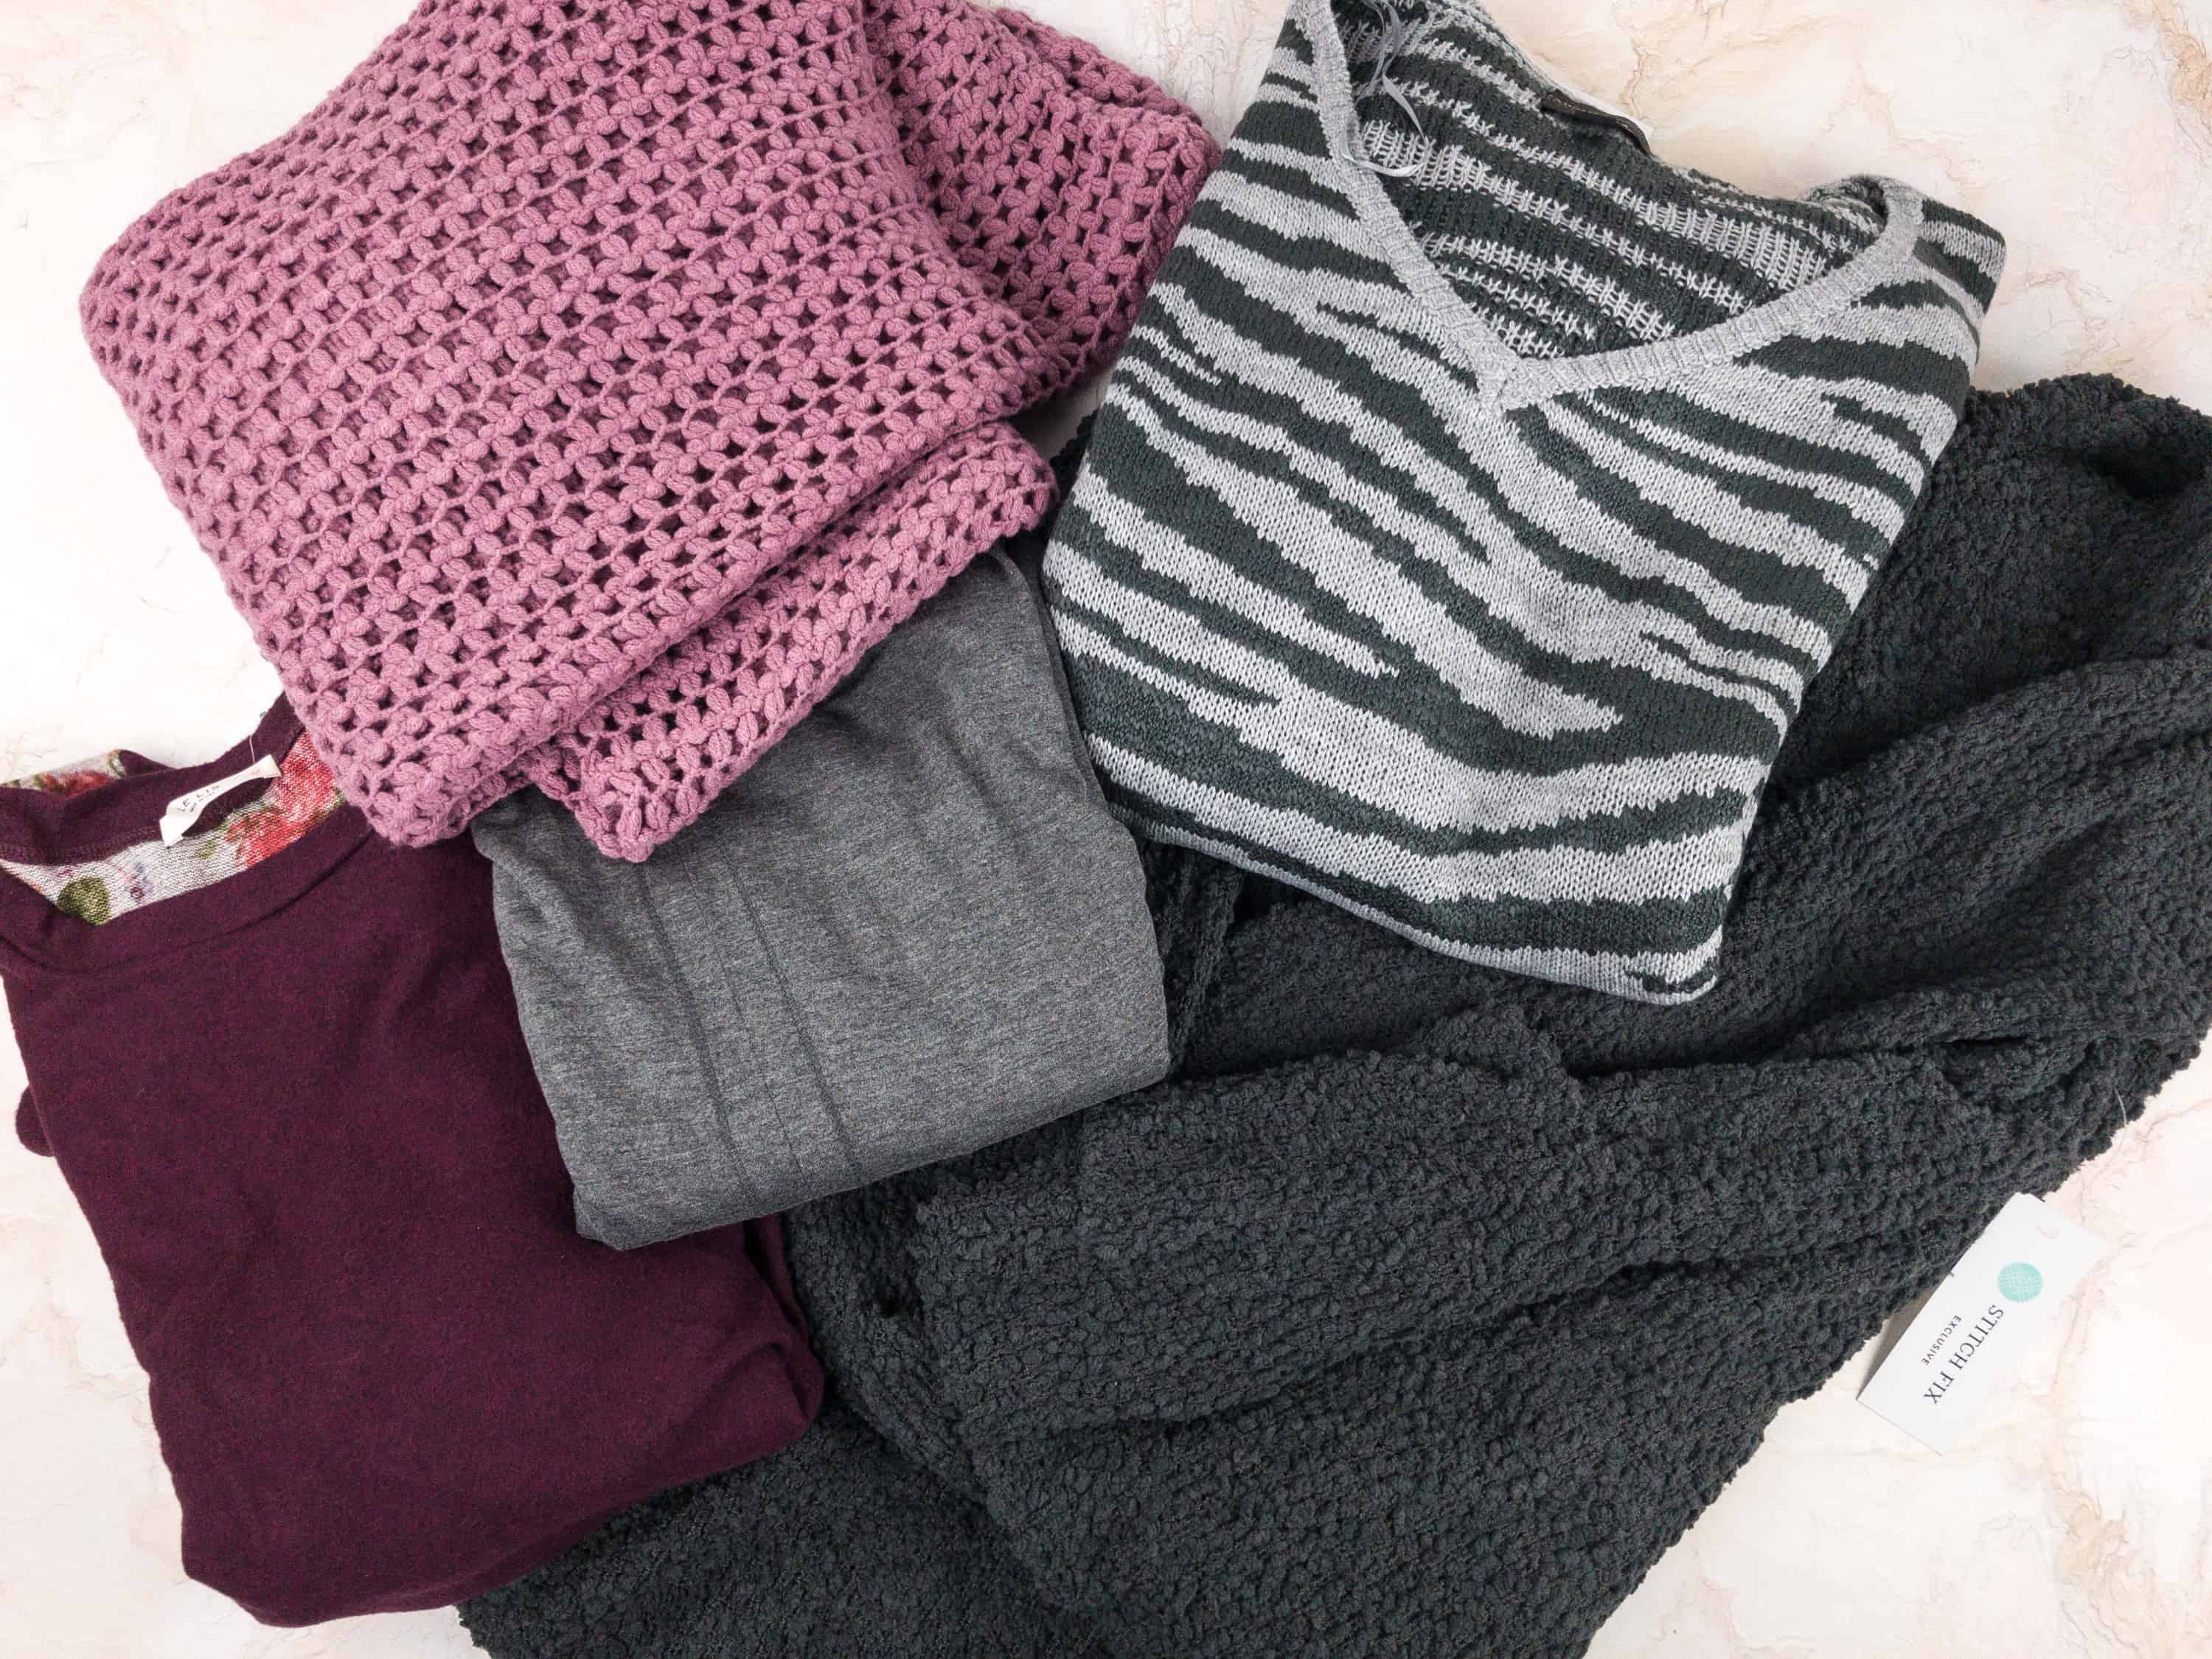 January 2018 Stitch Fix Subscription Box Review {Maternity} + Try It Free Deal!